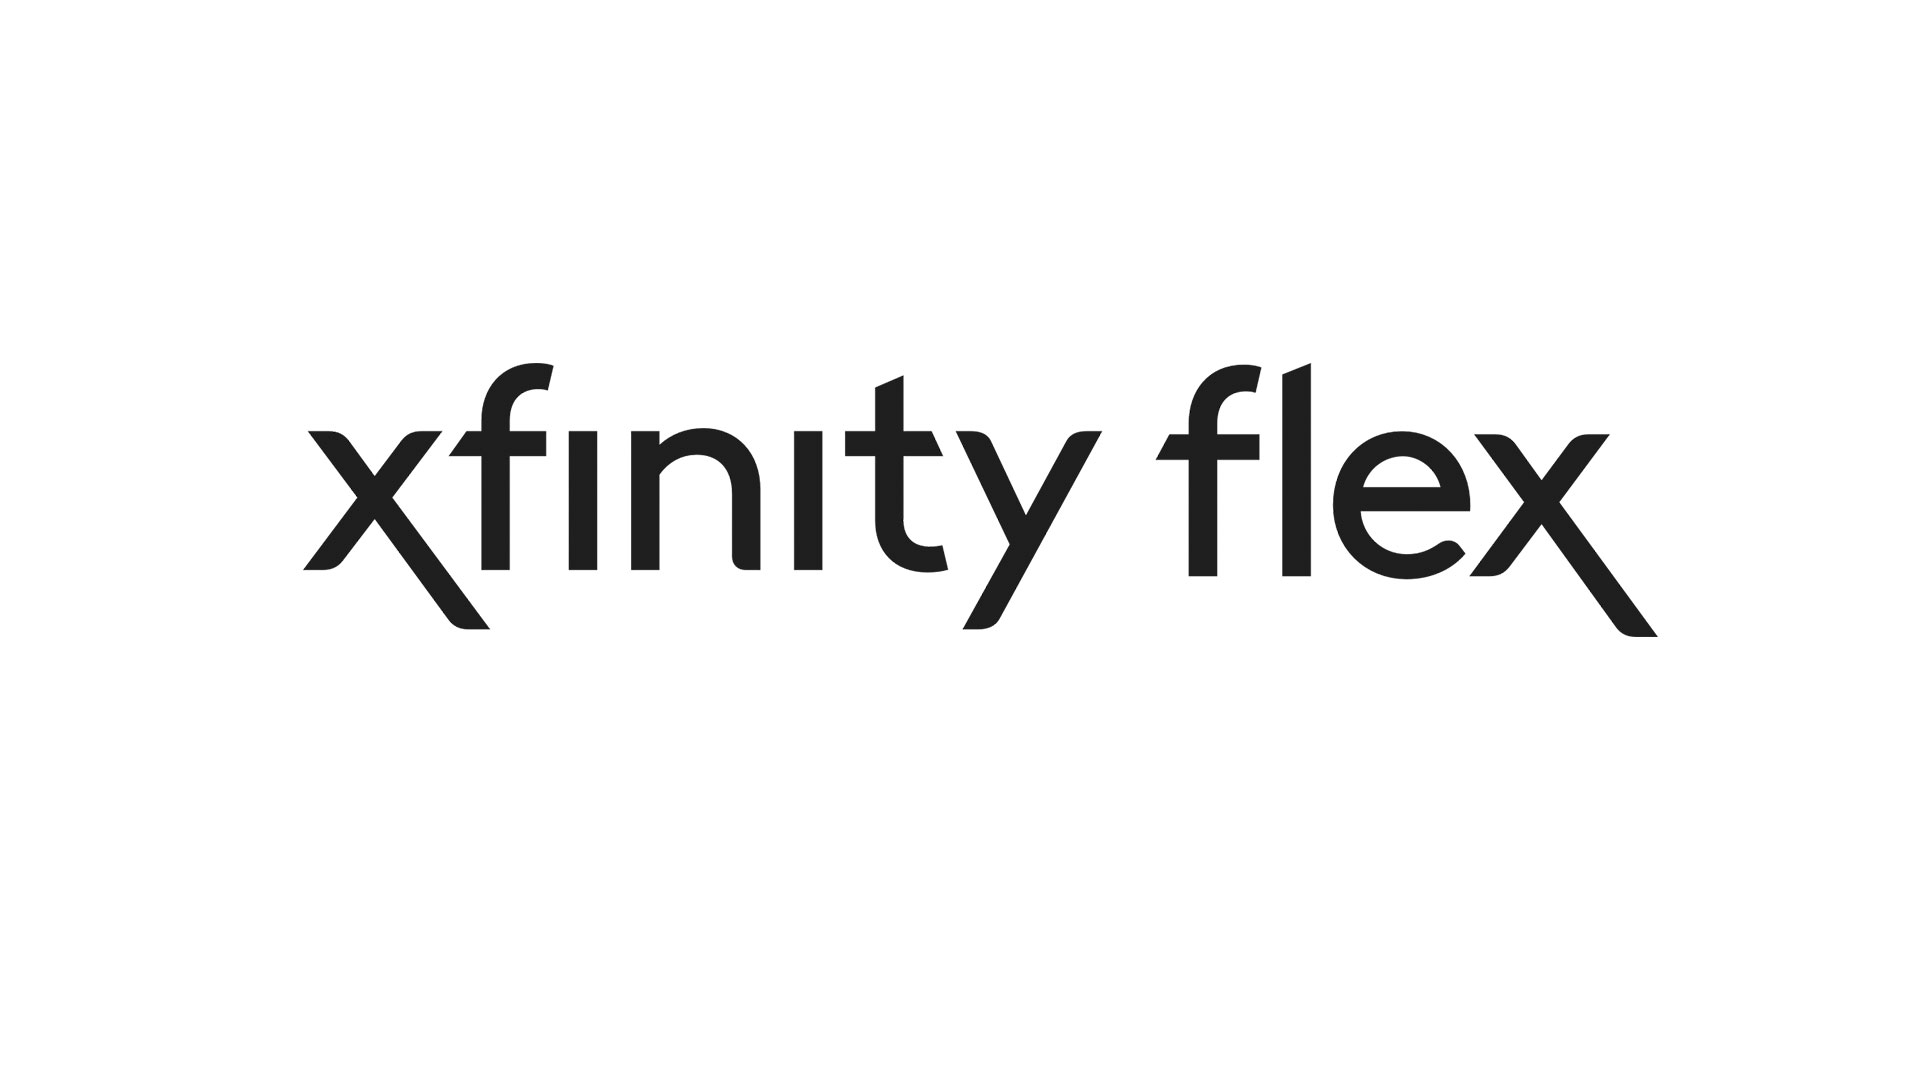 Comcast Makes Xfinity Flex Available To Internet Only